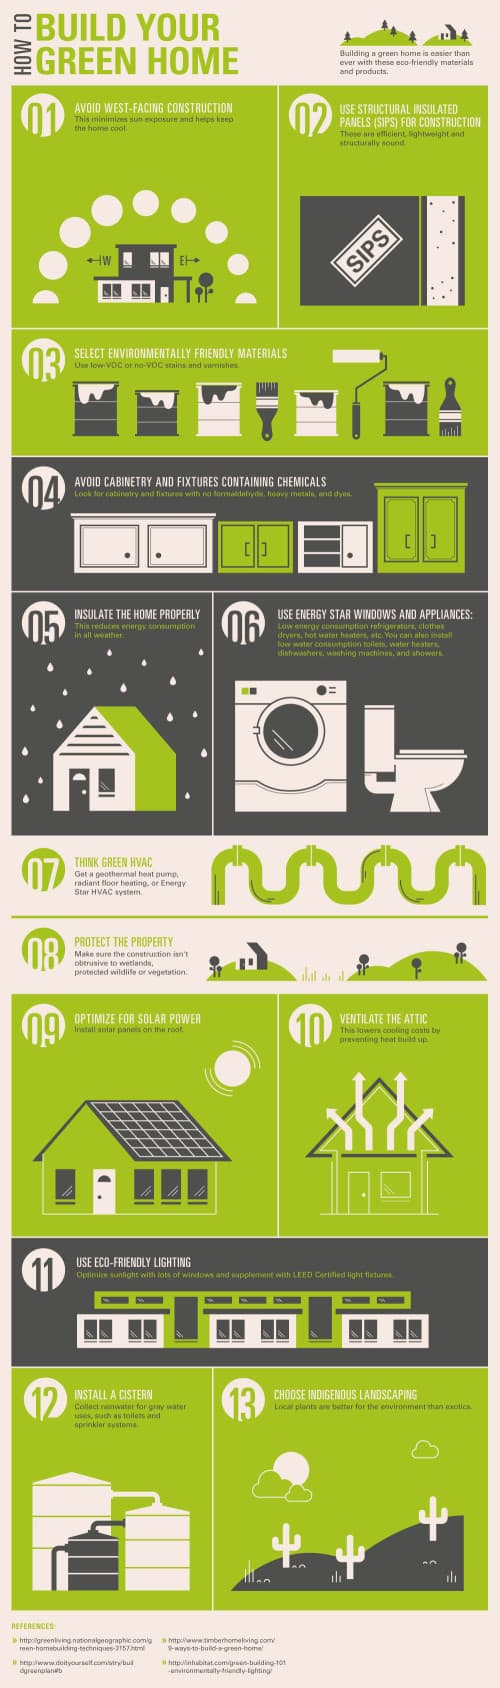 13 tips for building a green home infographic green for How to make house green